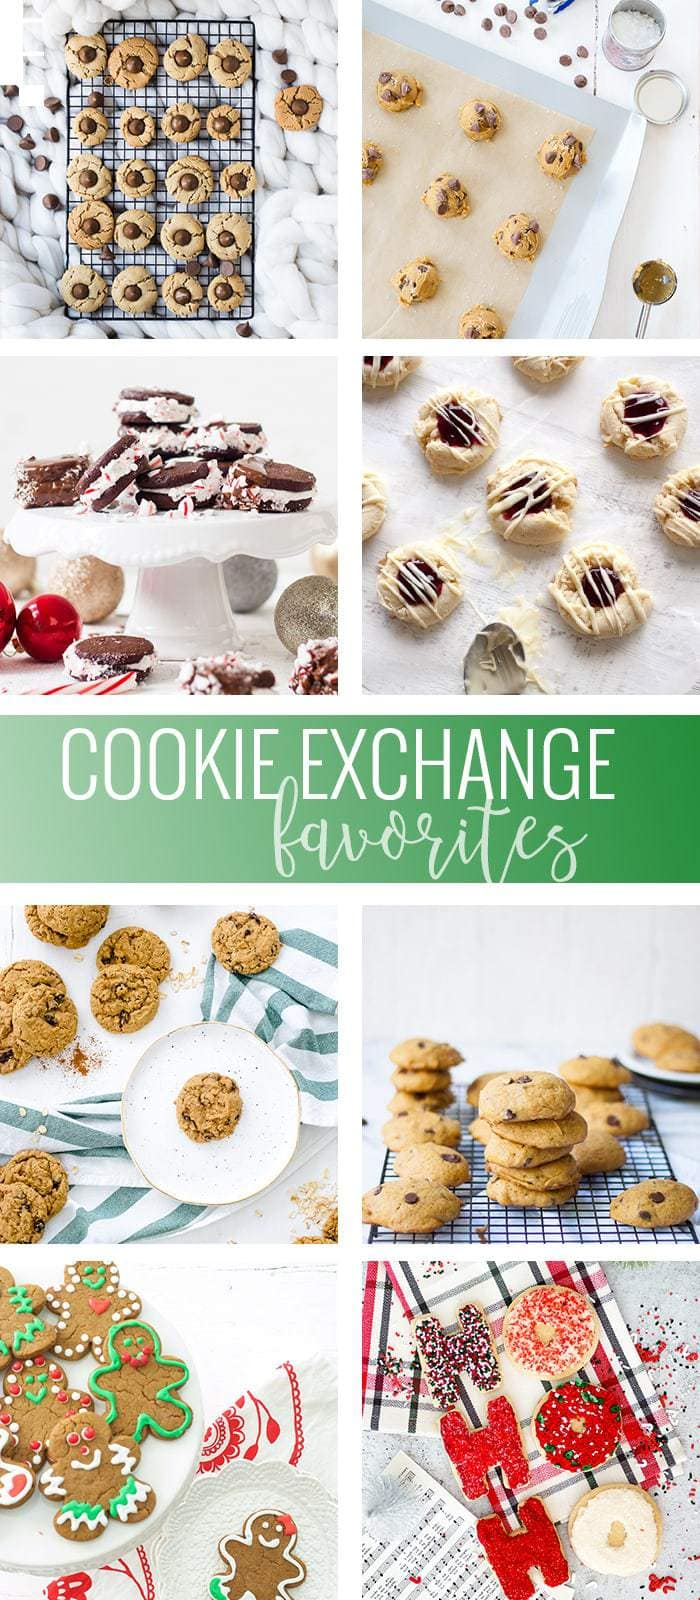 Cookie Exchange Favorites | Everything You Need To Host A Cookie Exchange | holiday cookie exchange | holiday party ideas | christmas cookie exchange | hosting a holiday party || Oh So Delicioso #holidaycookieexchange #holidaycookies #christmascookies